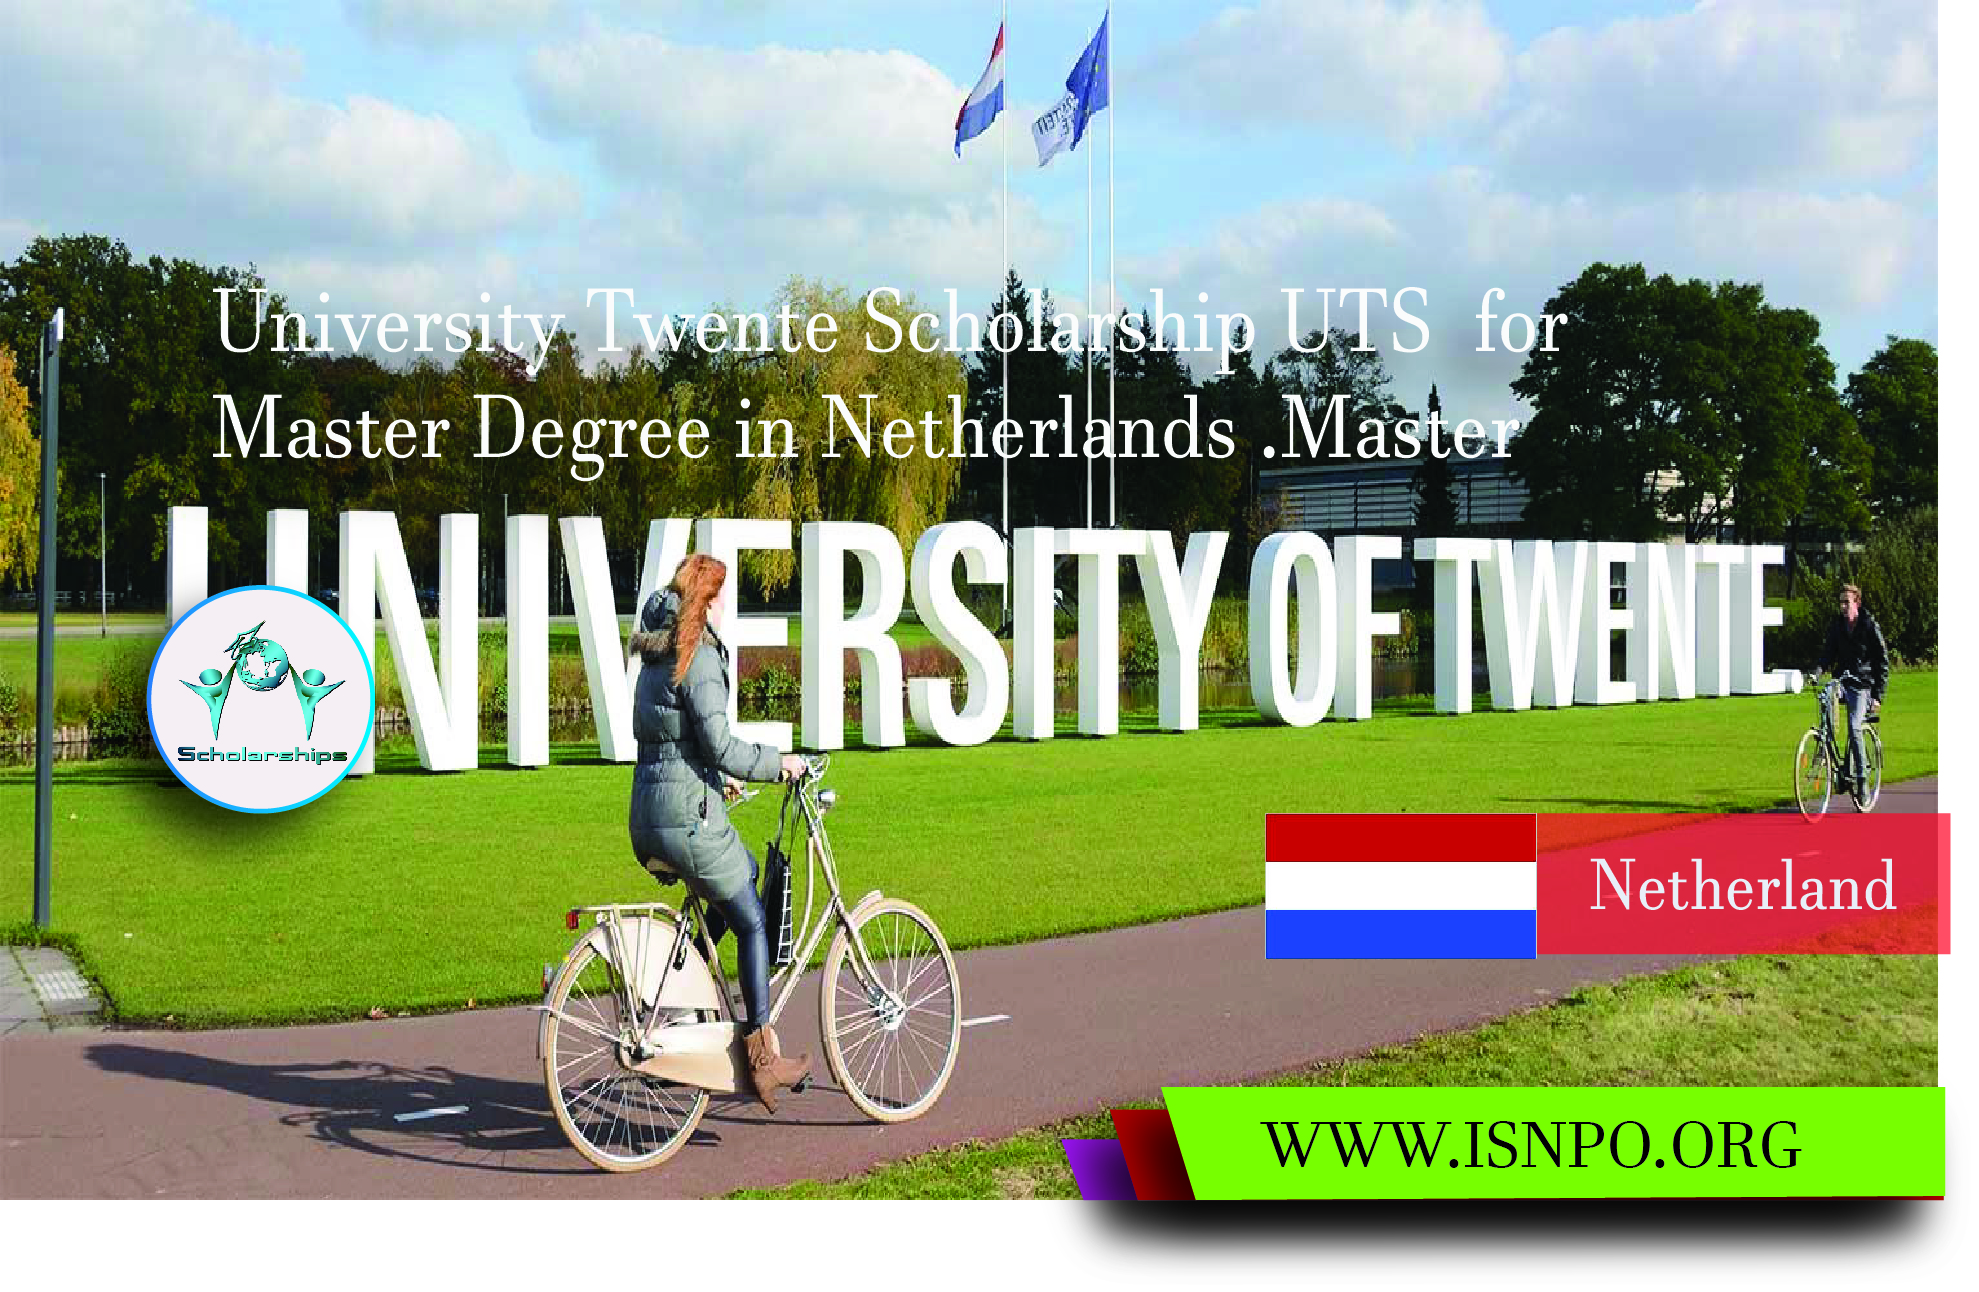 University Of Twente Scholarship Uts 2021 Application Is Ongoing Apply Now Globe Migrant